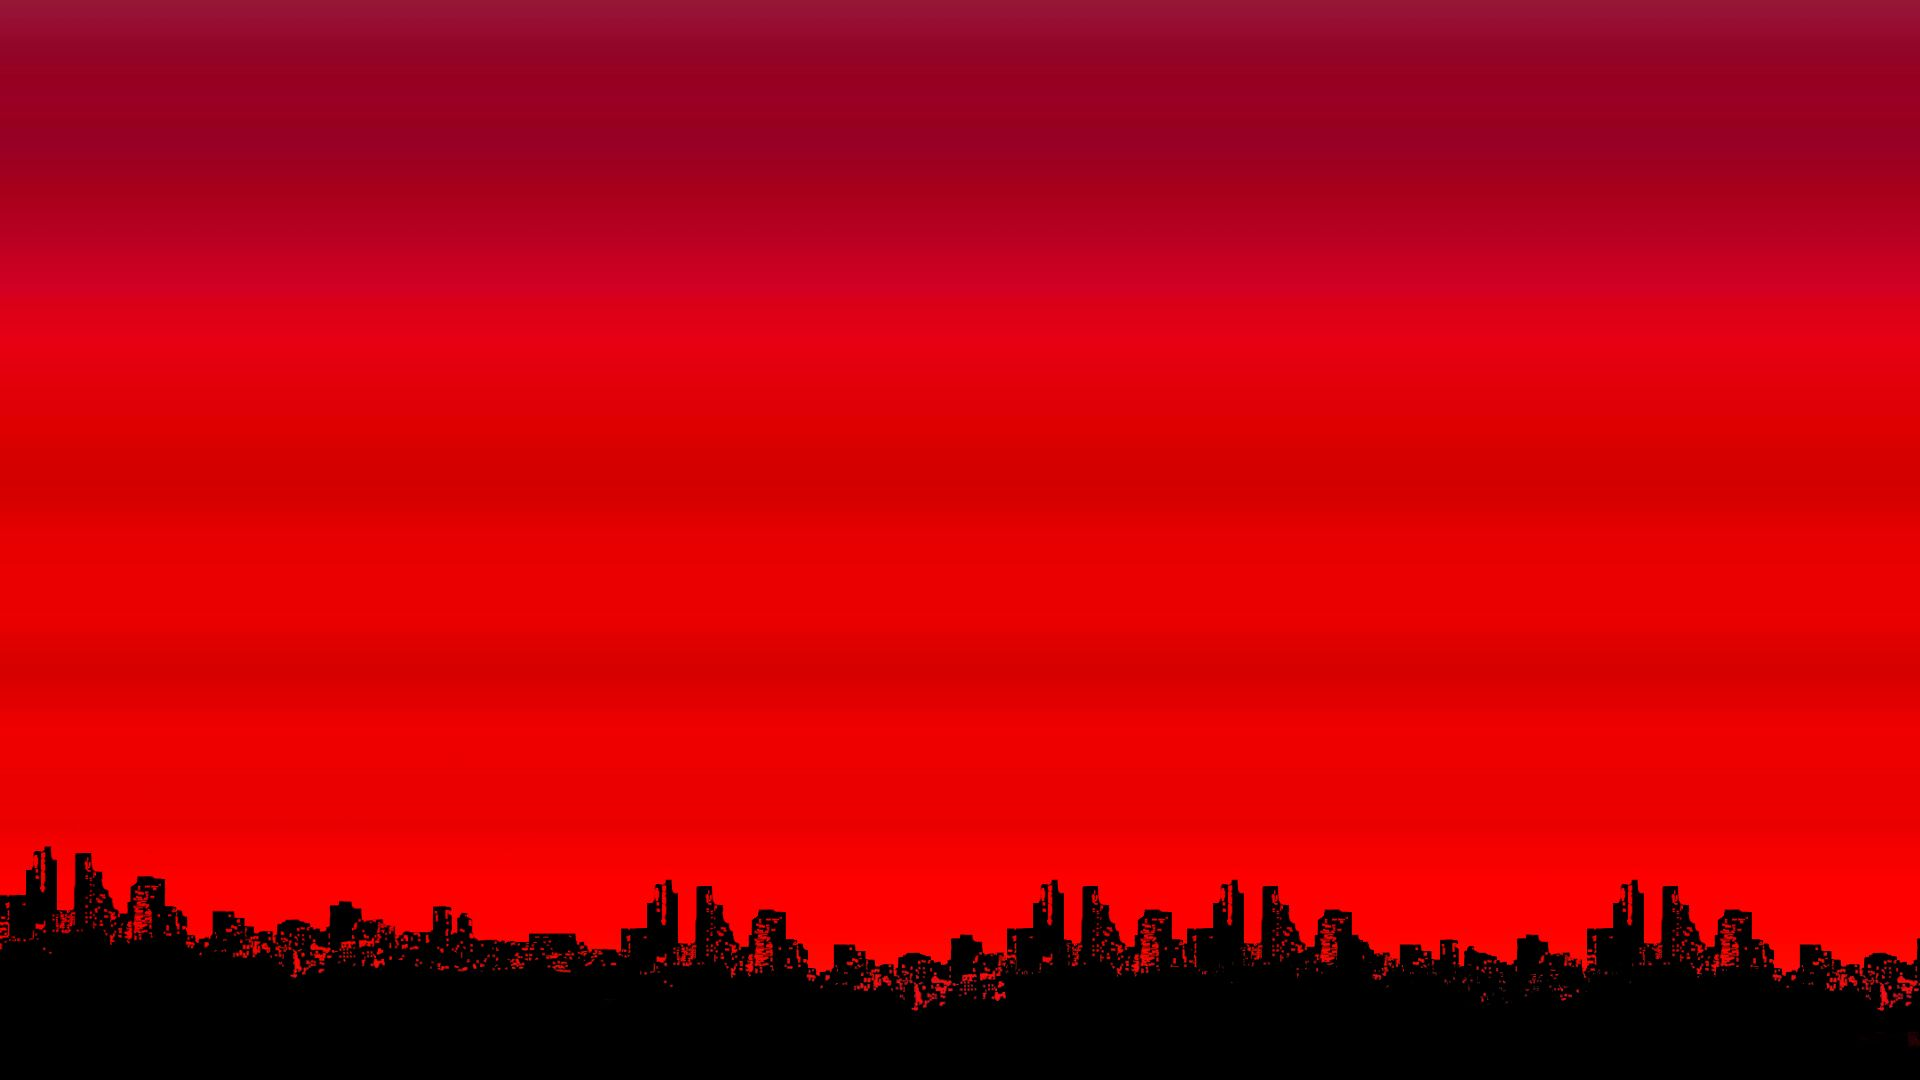 View Red Abstract Wallpaper 1920X1080 Gif